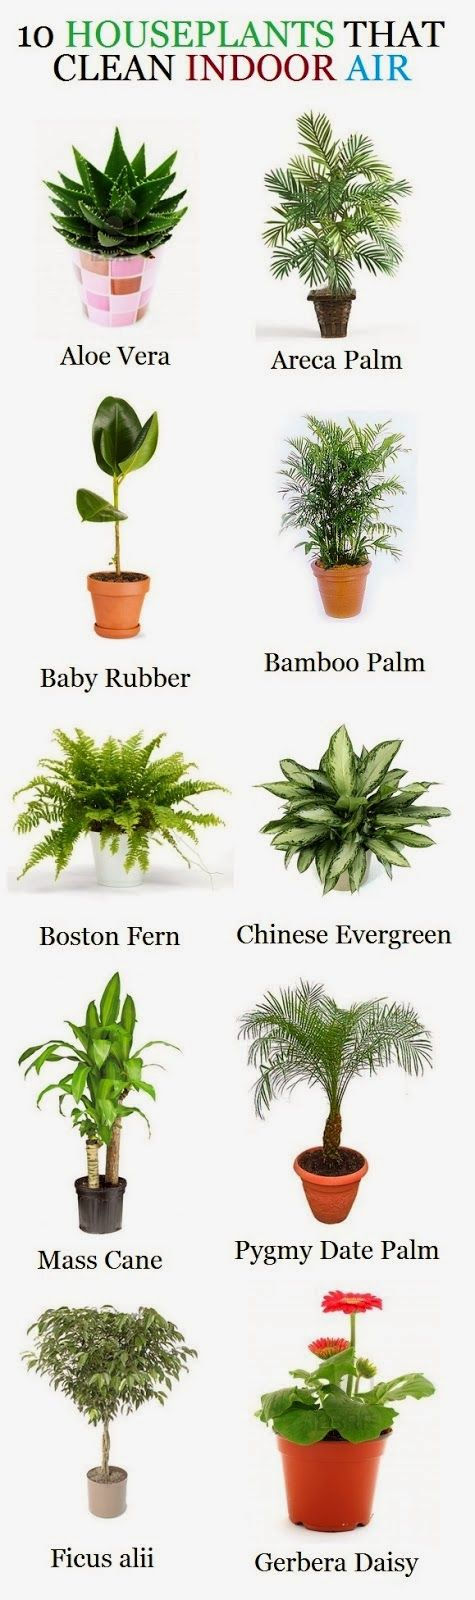 10 Houseplants that clean indoor air http://sulia.com/my_thoughts/4724f406-636a-4687-9dcd-0205d418ac86/?source=pin&action=share&ux=mono&btn=big&form_factor=desktop&sharer_id=126307343&is_sharer_author=true&pinner=126307343